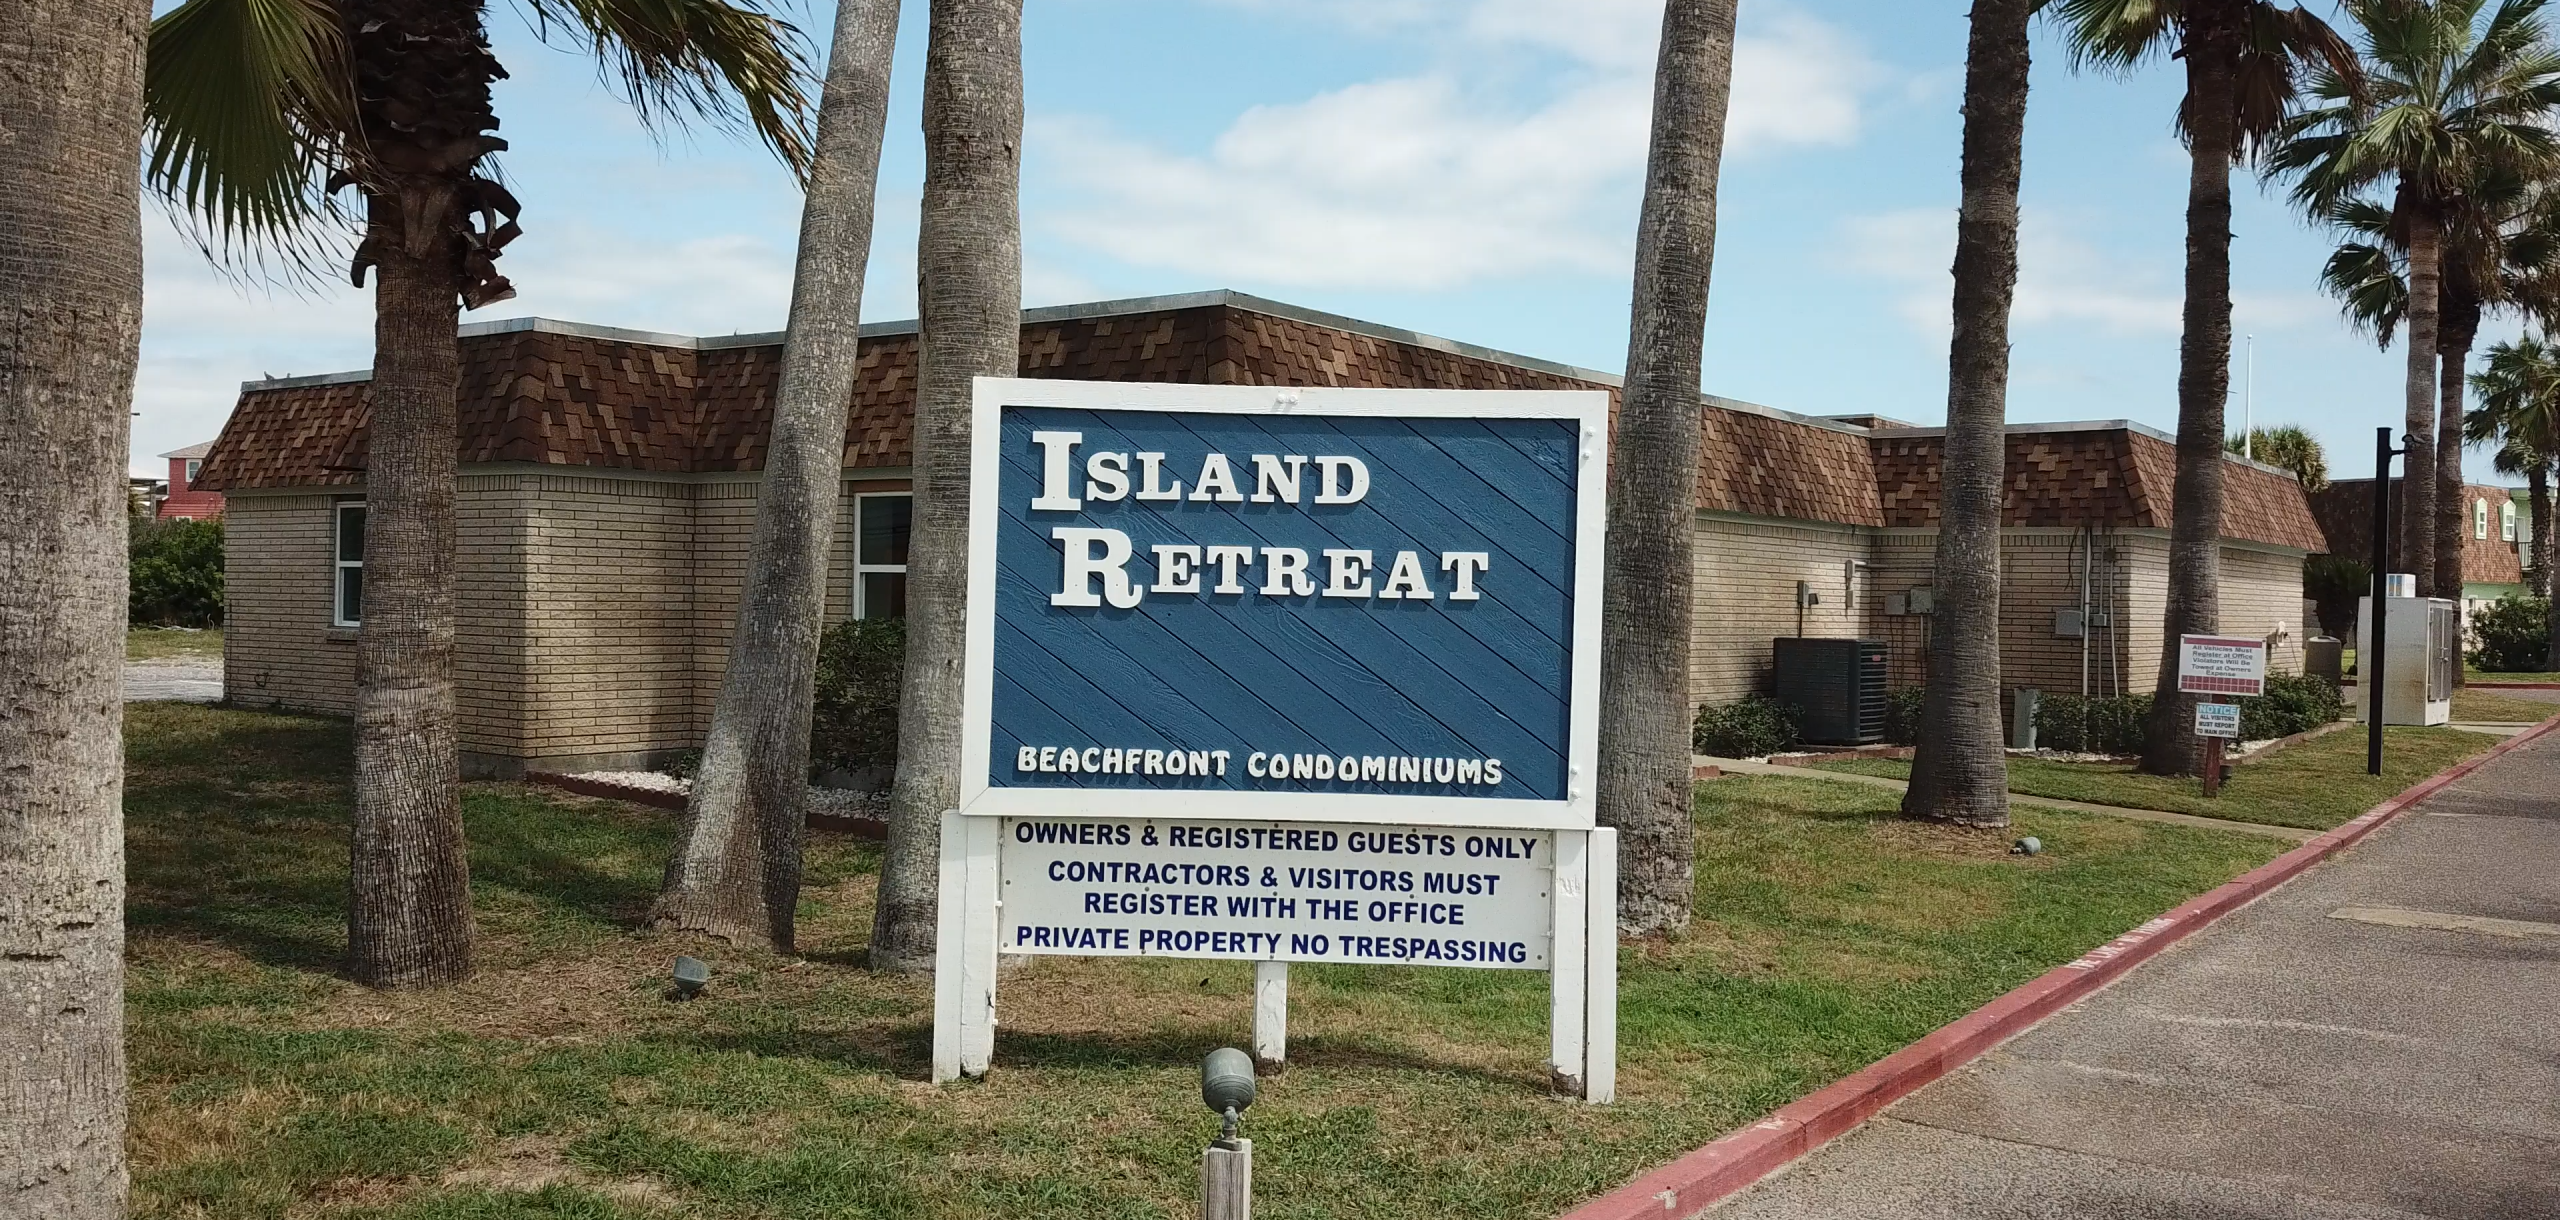 Entrance to Island Retreat